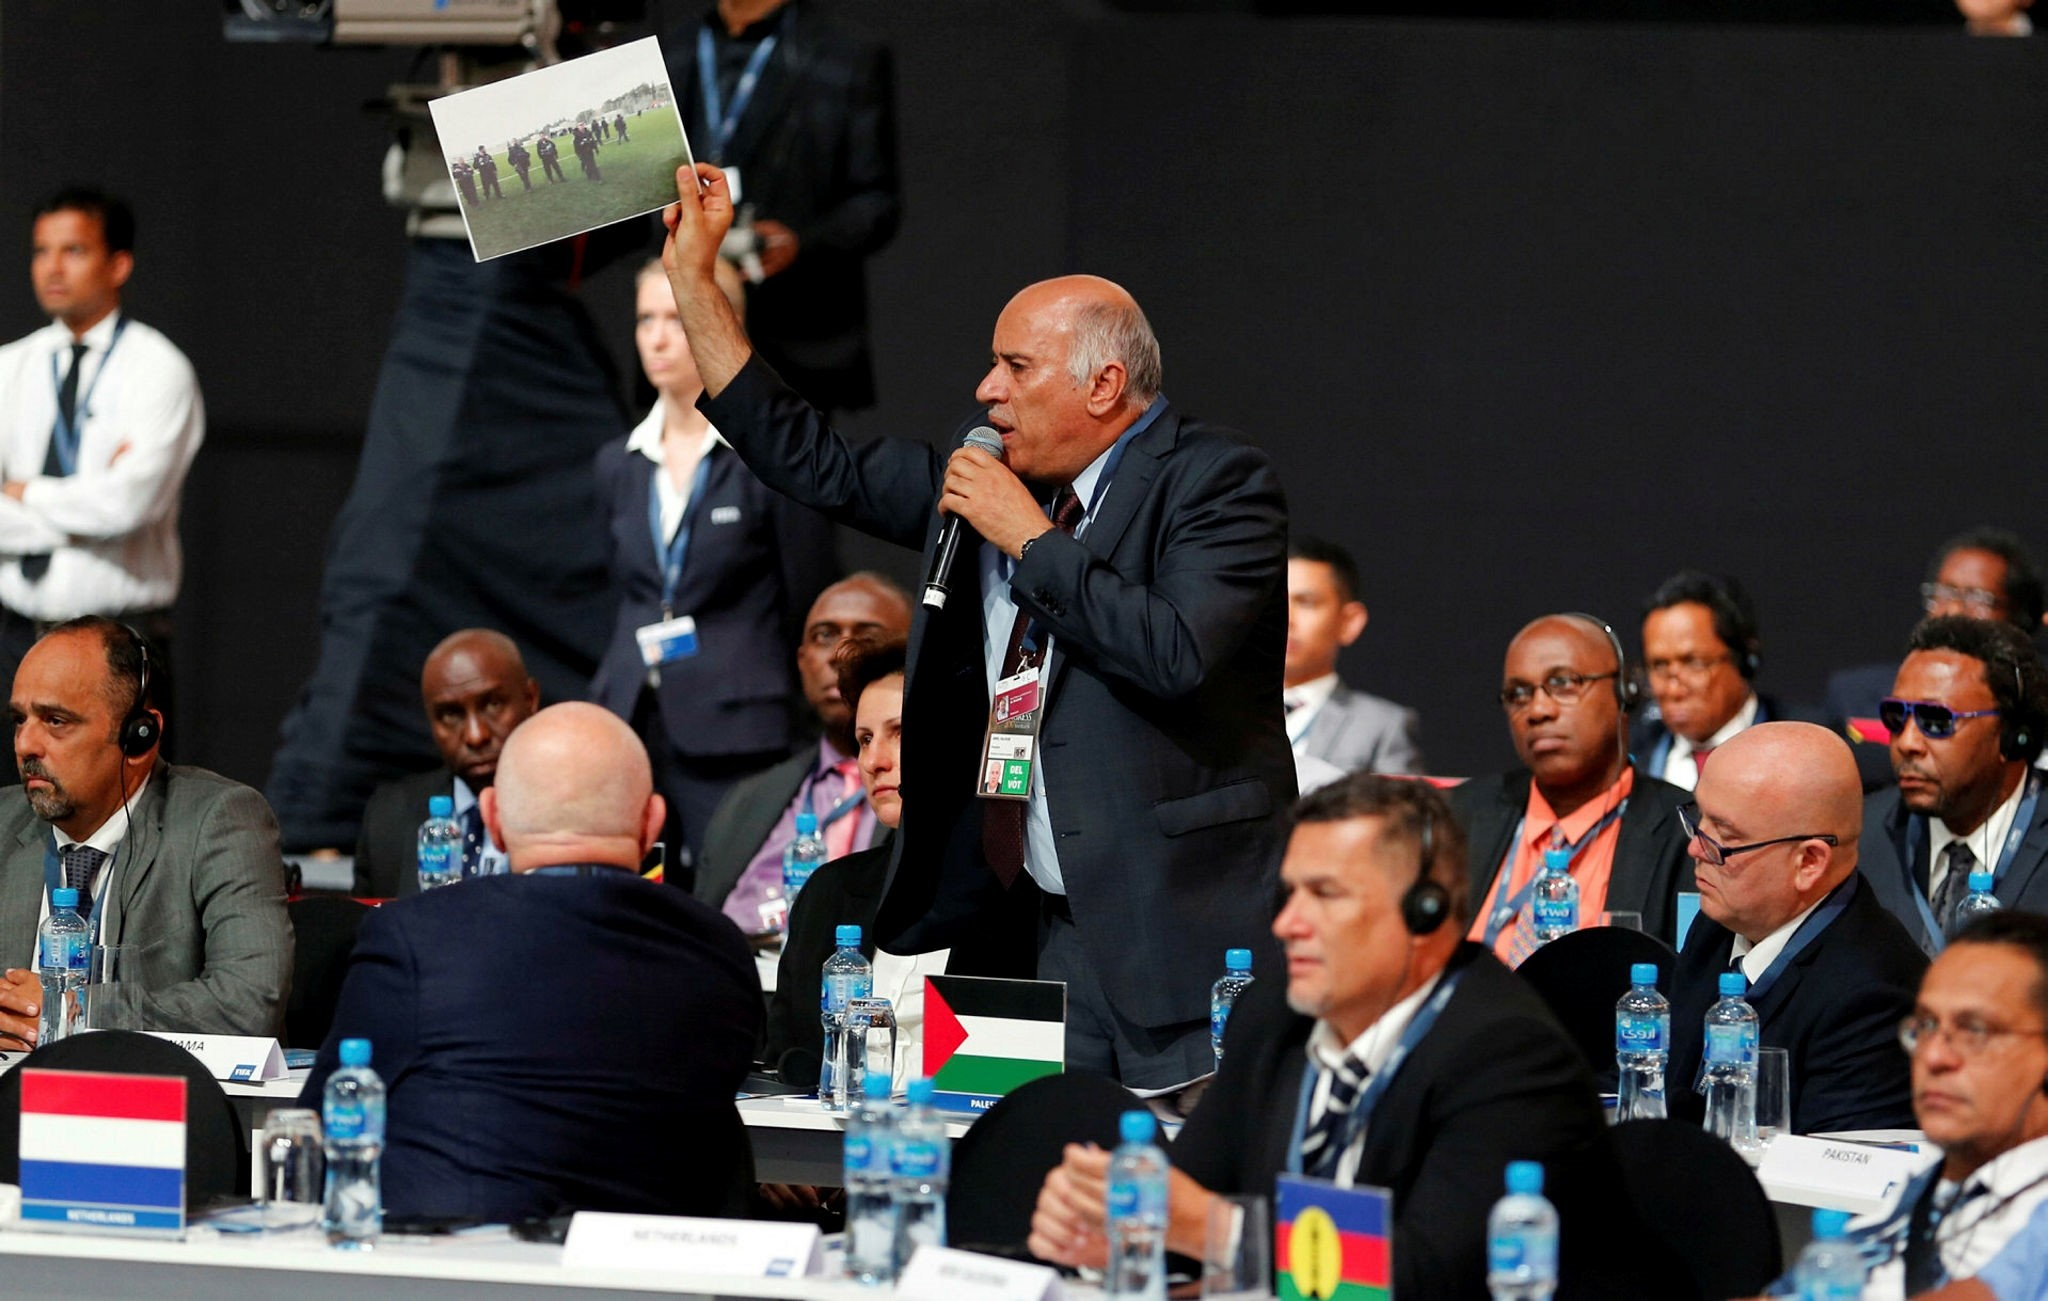 Palestinian Football Association (PFA) President Jibril Rajoub shows a photo mentioning Israeli soldiers on soccer ground in Palestine, at the 67th FIFA Congress in Manama, Bahrain May 11, 2017. (Reuters Photo)